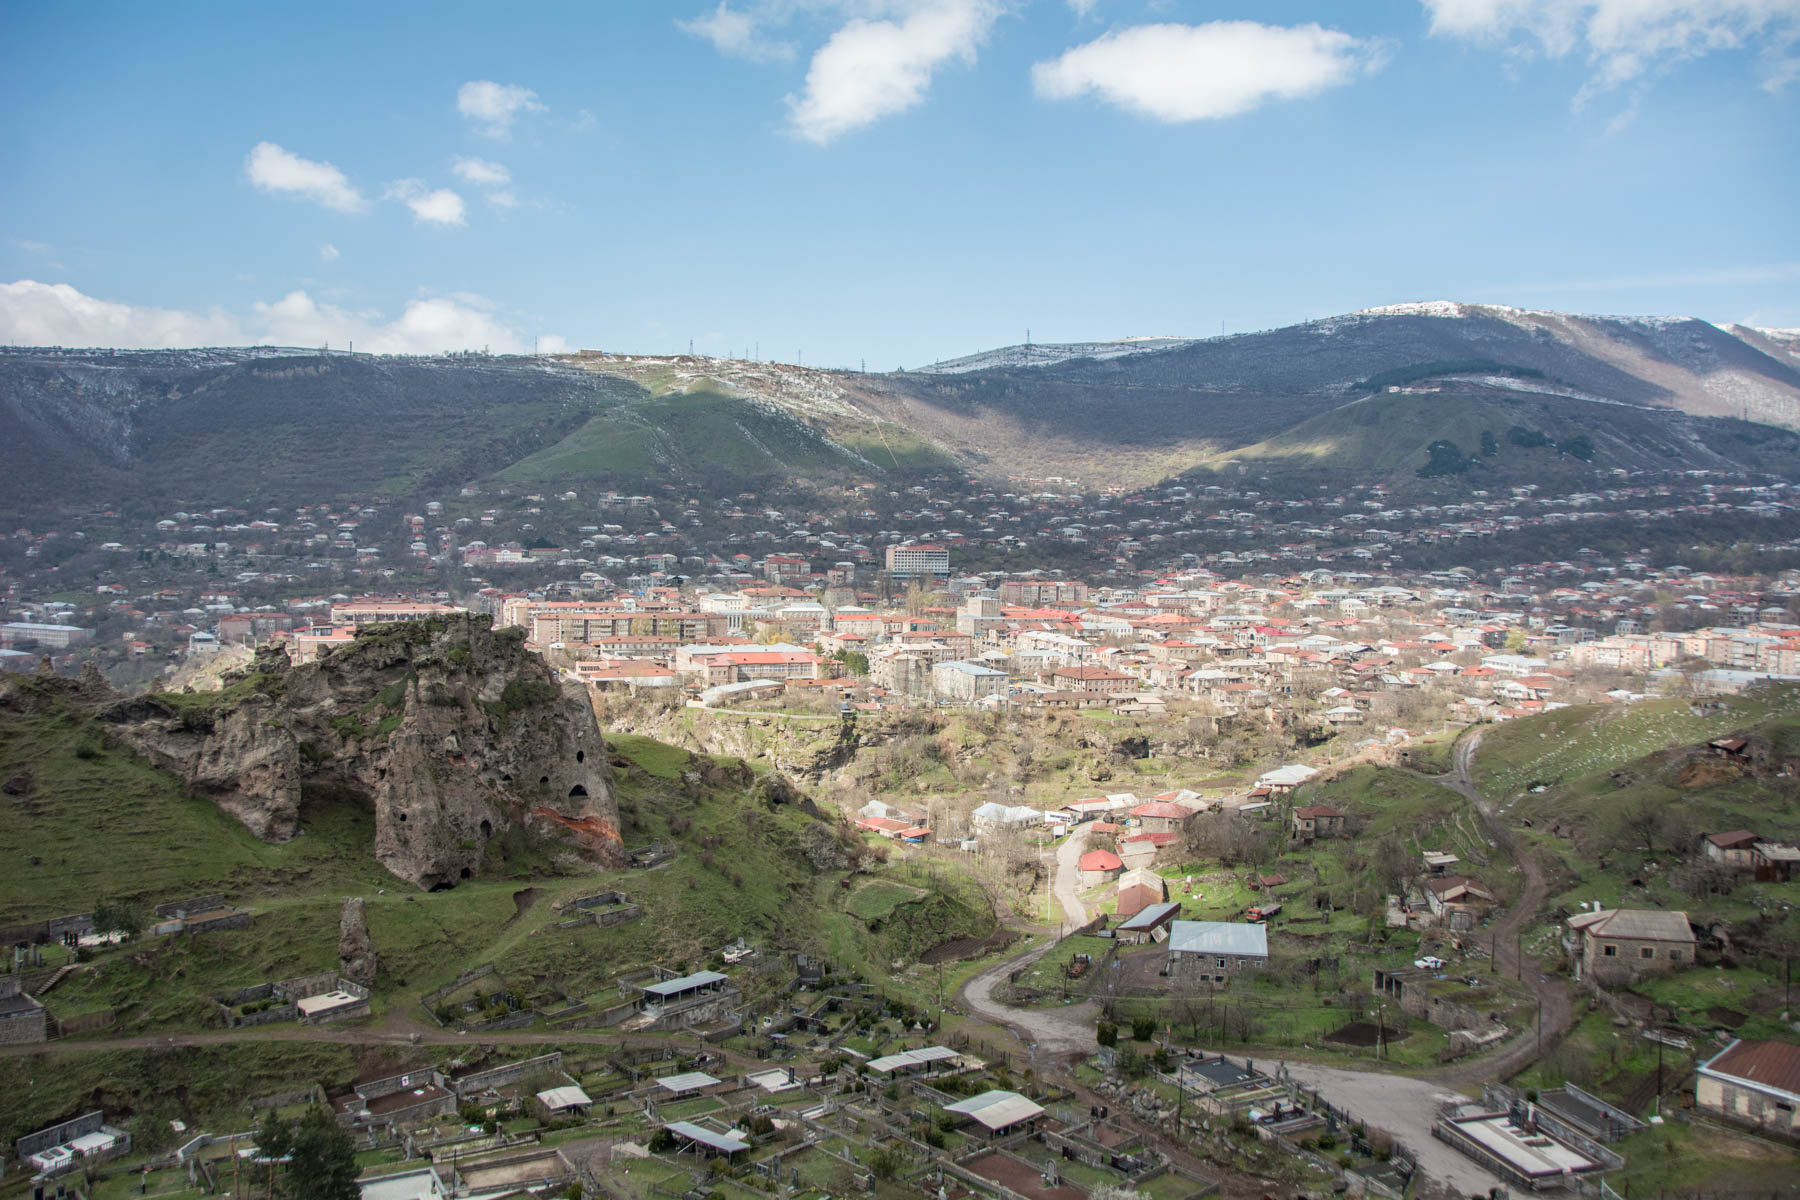 How to get to Tatev from Goris, Armenia - The city of Goris, Armenia from the top of a mountain.